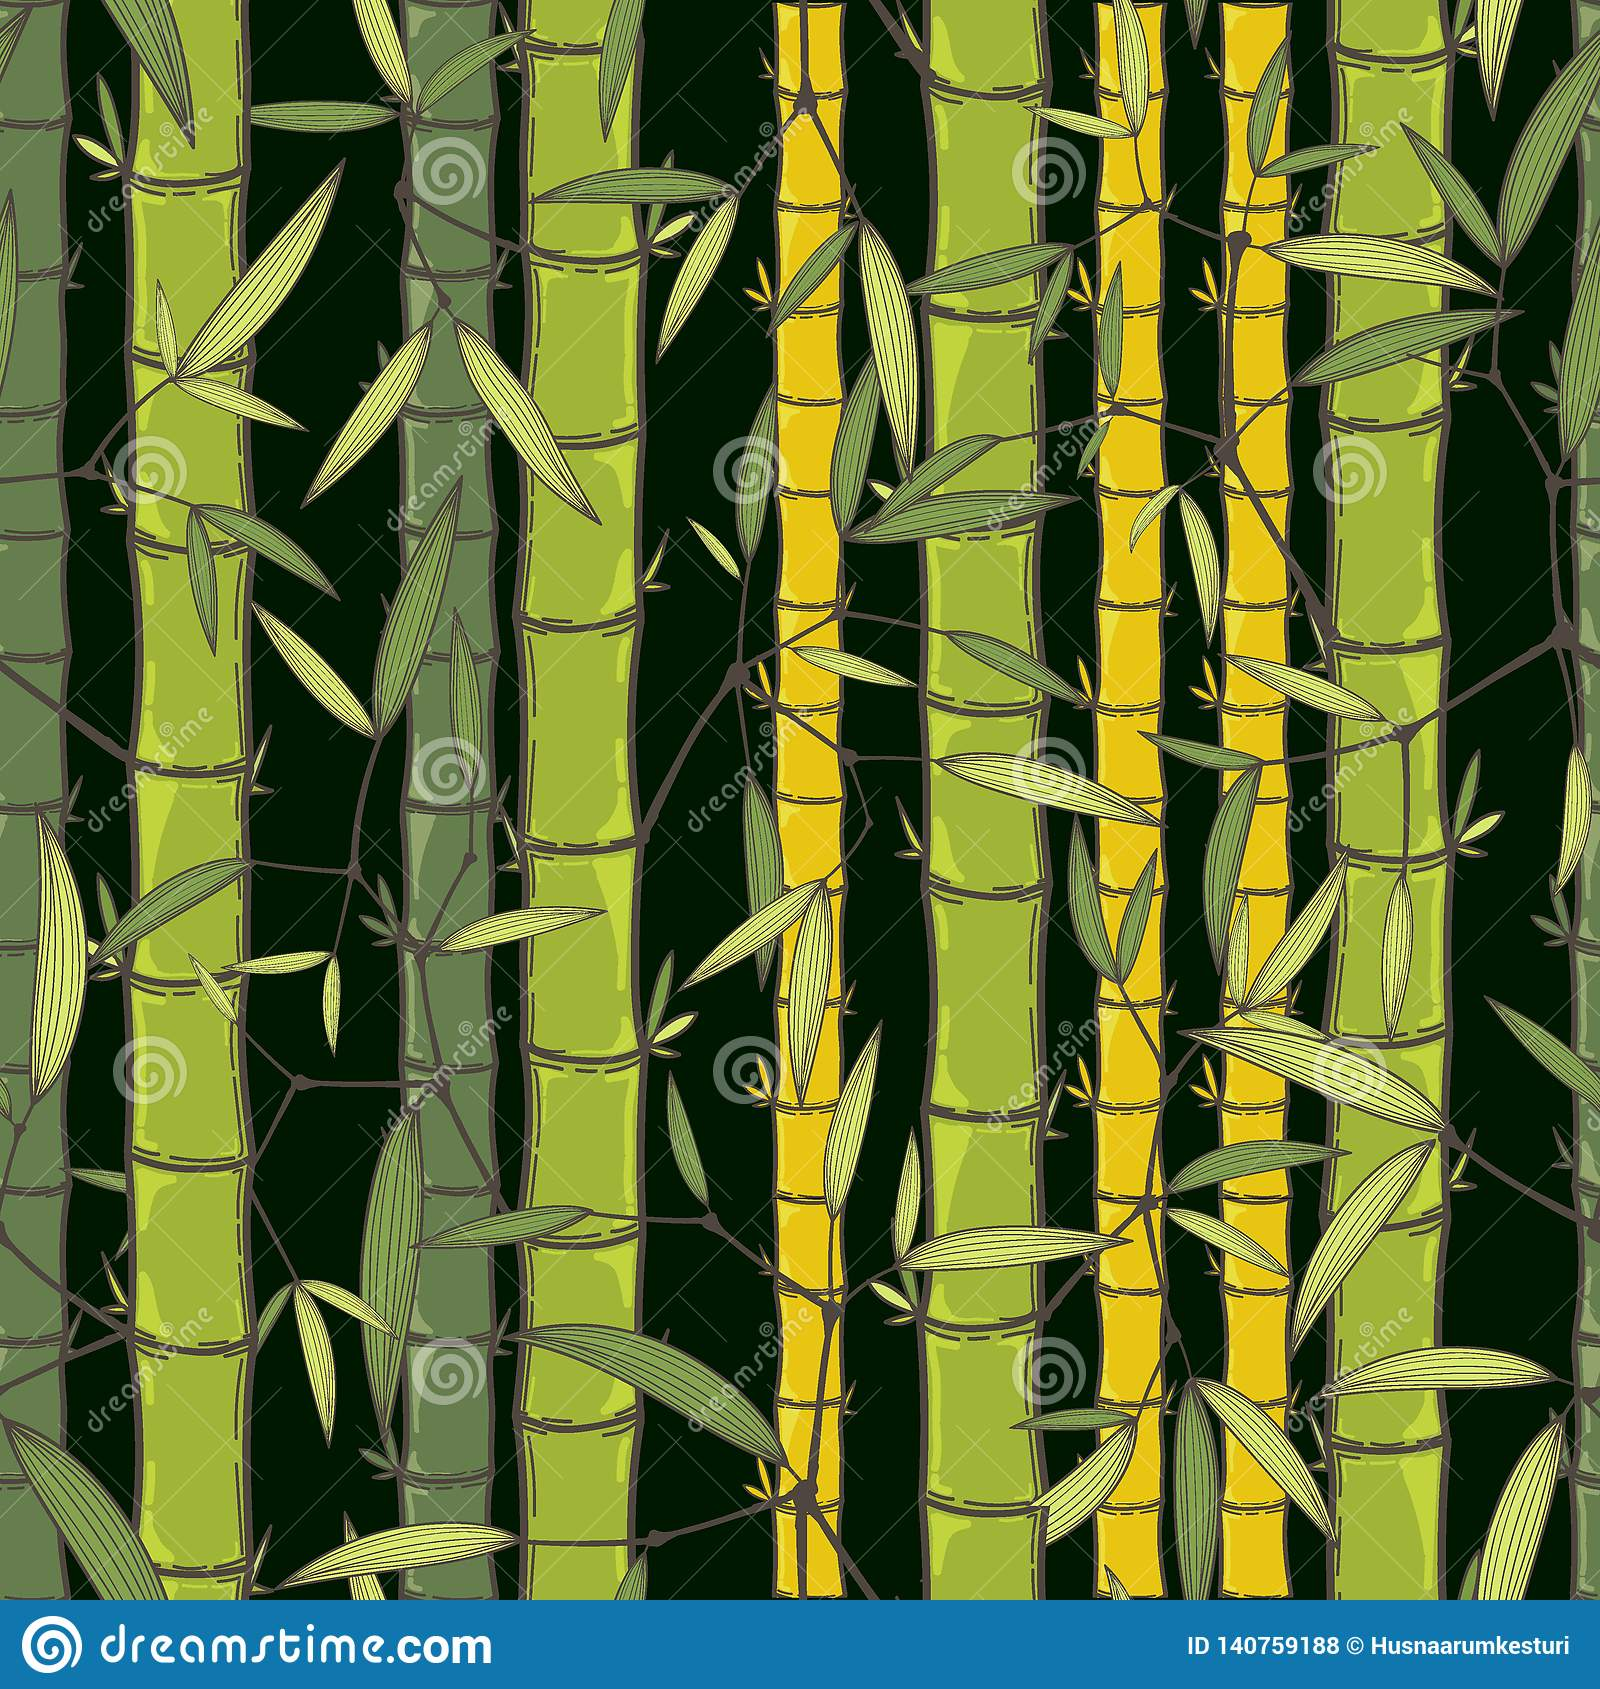 Chinese Or Japanese Bamboo Grass Oriental Wallpaper Vector Illustration Tropical Asian Seamless Background Stock Vector Illustration Of Design Abstract 140759188